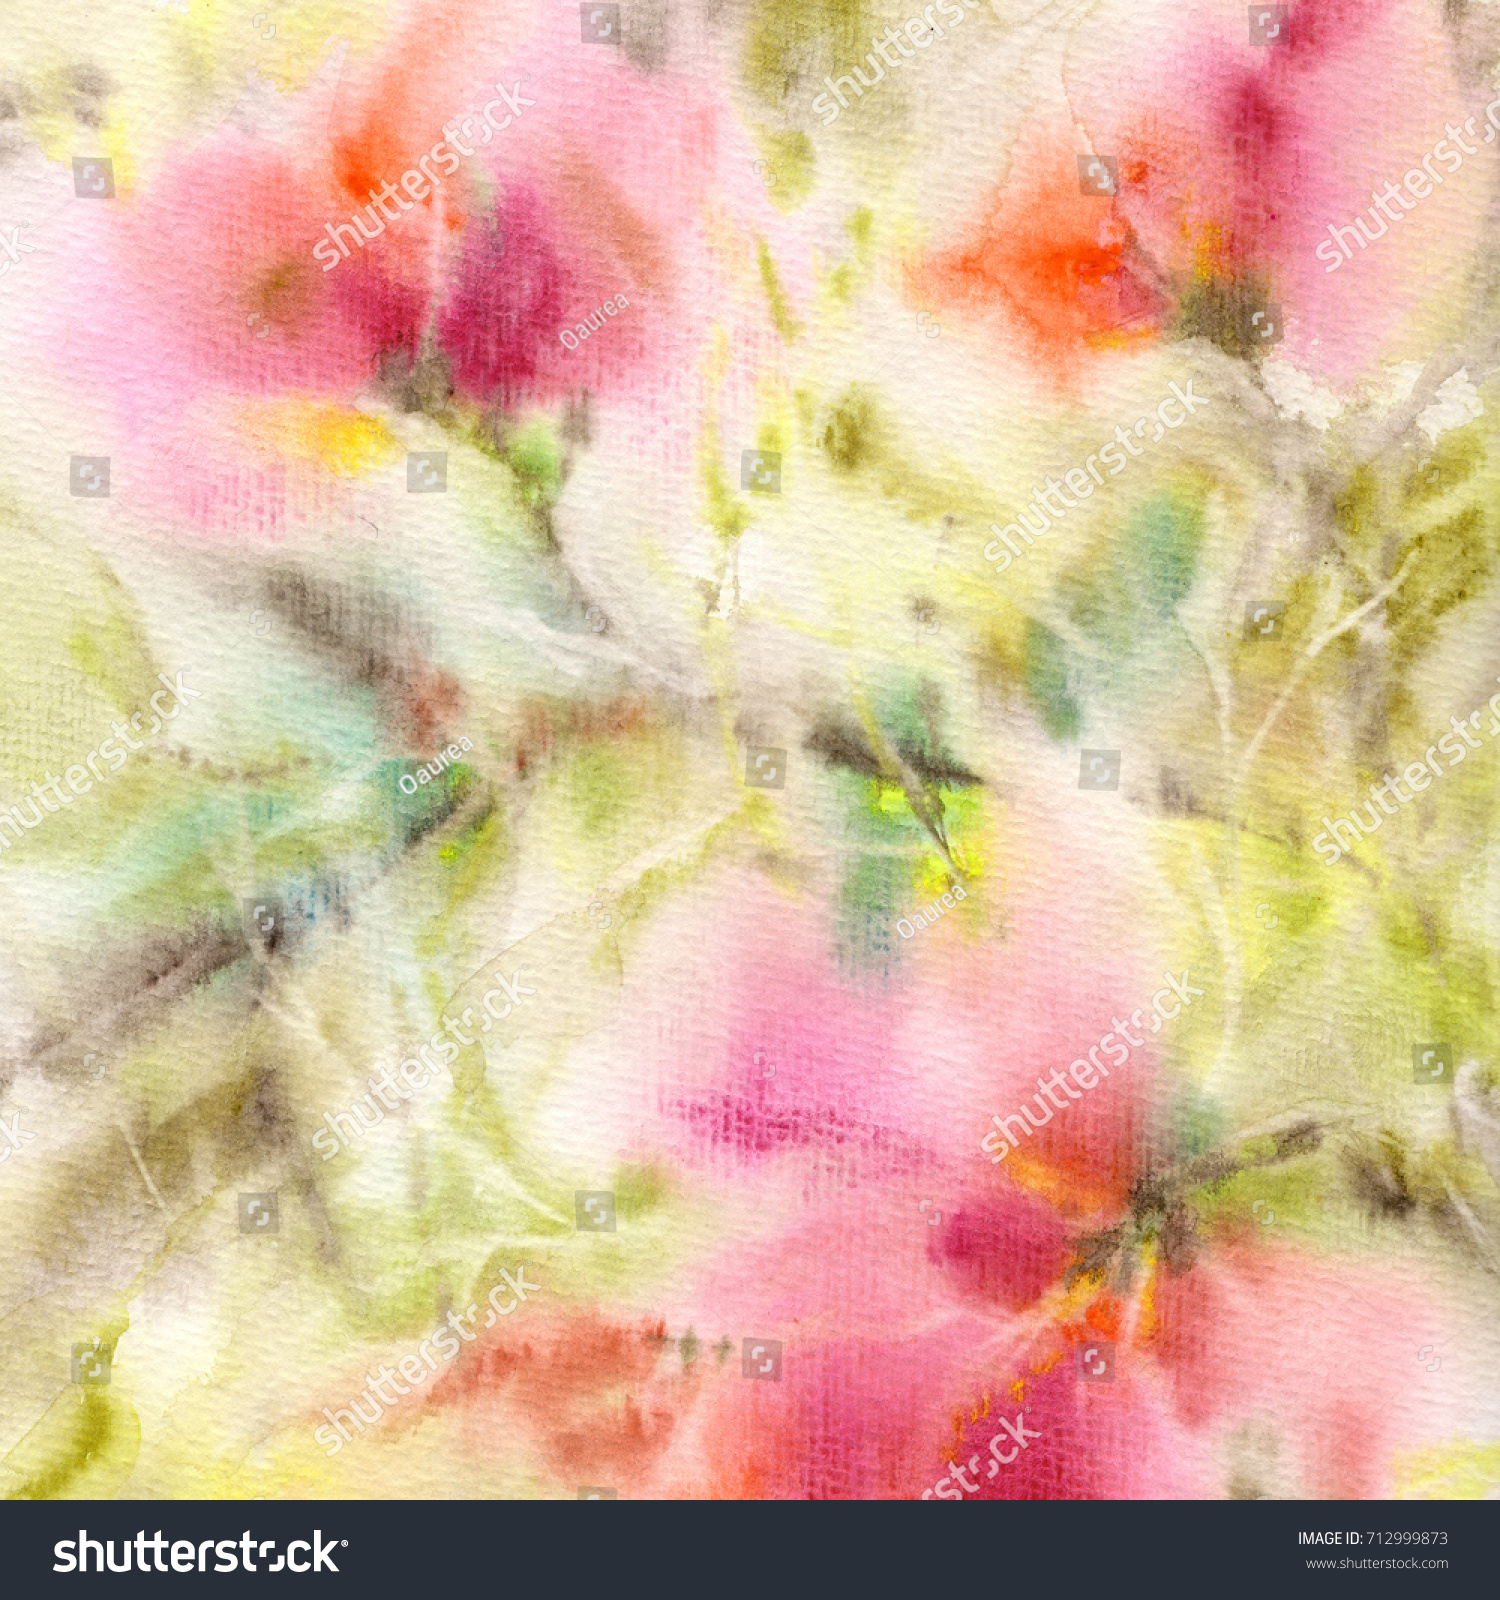 Floral Background Watercolor Floral Background Greeting Stock ...